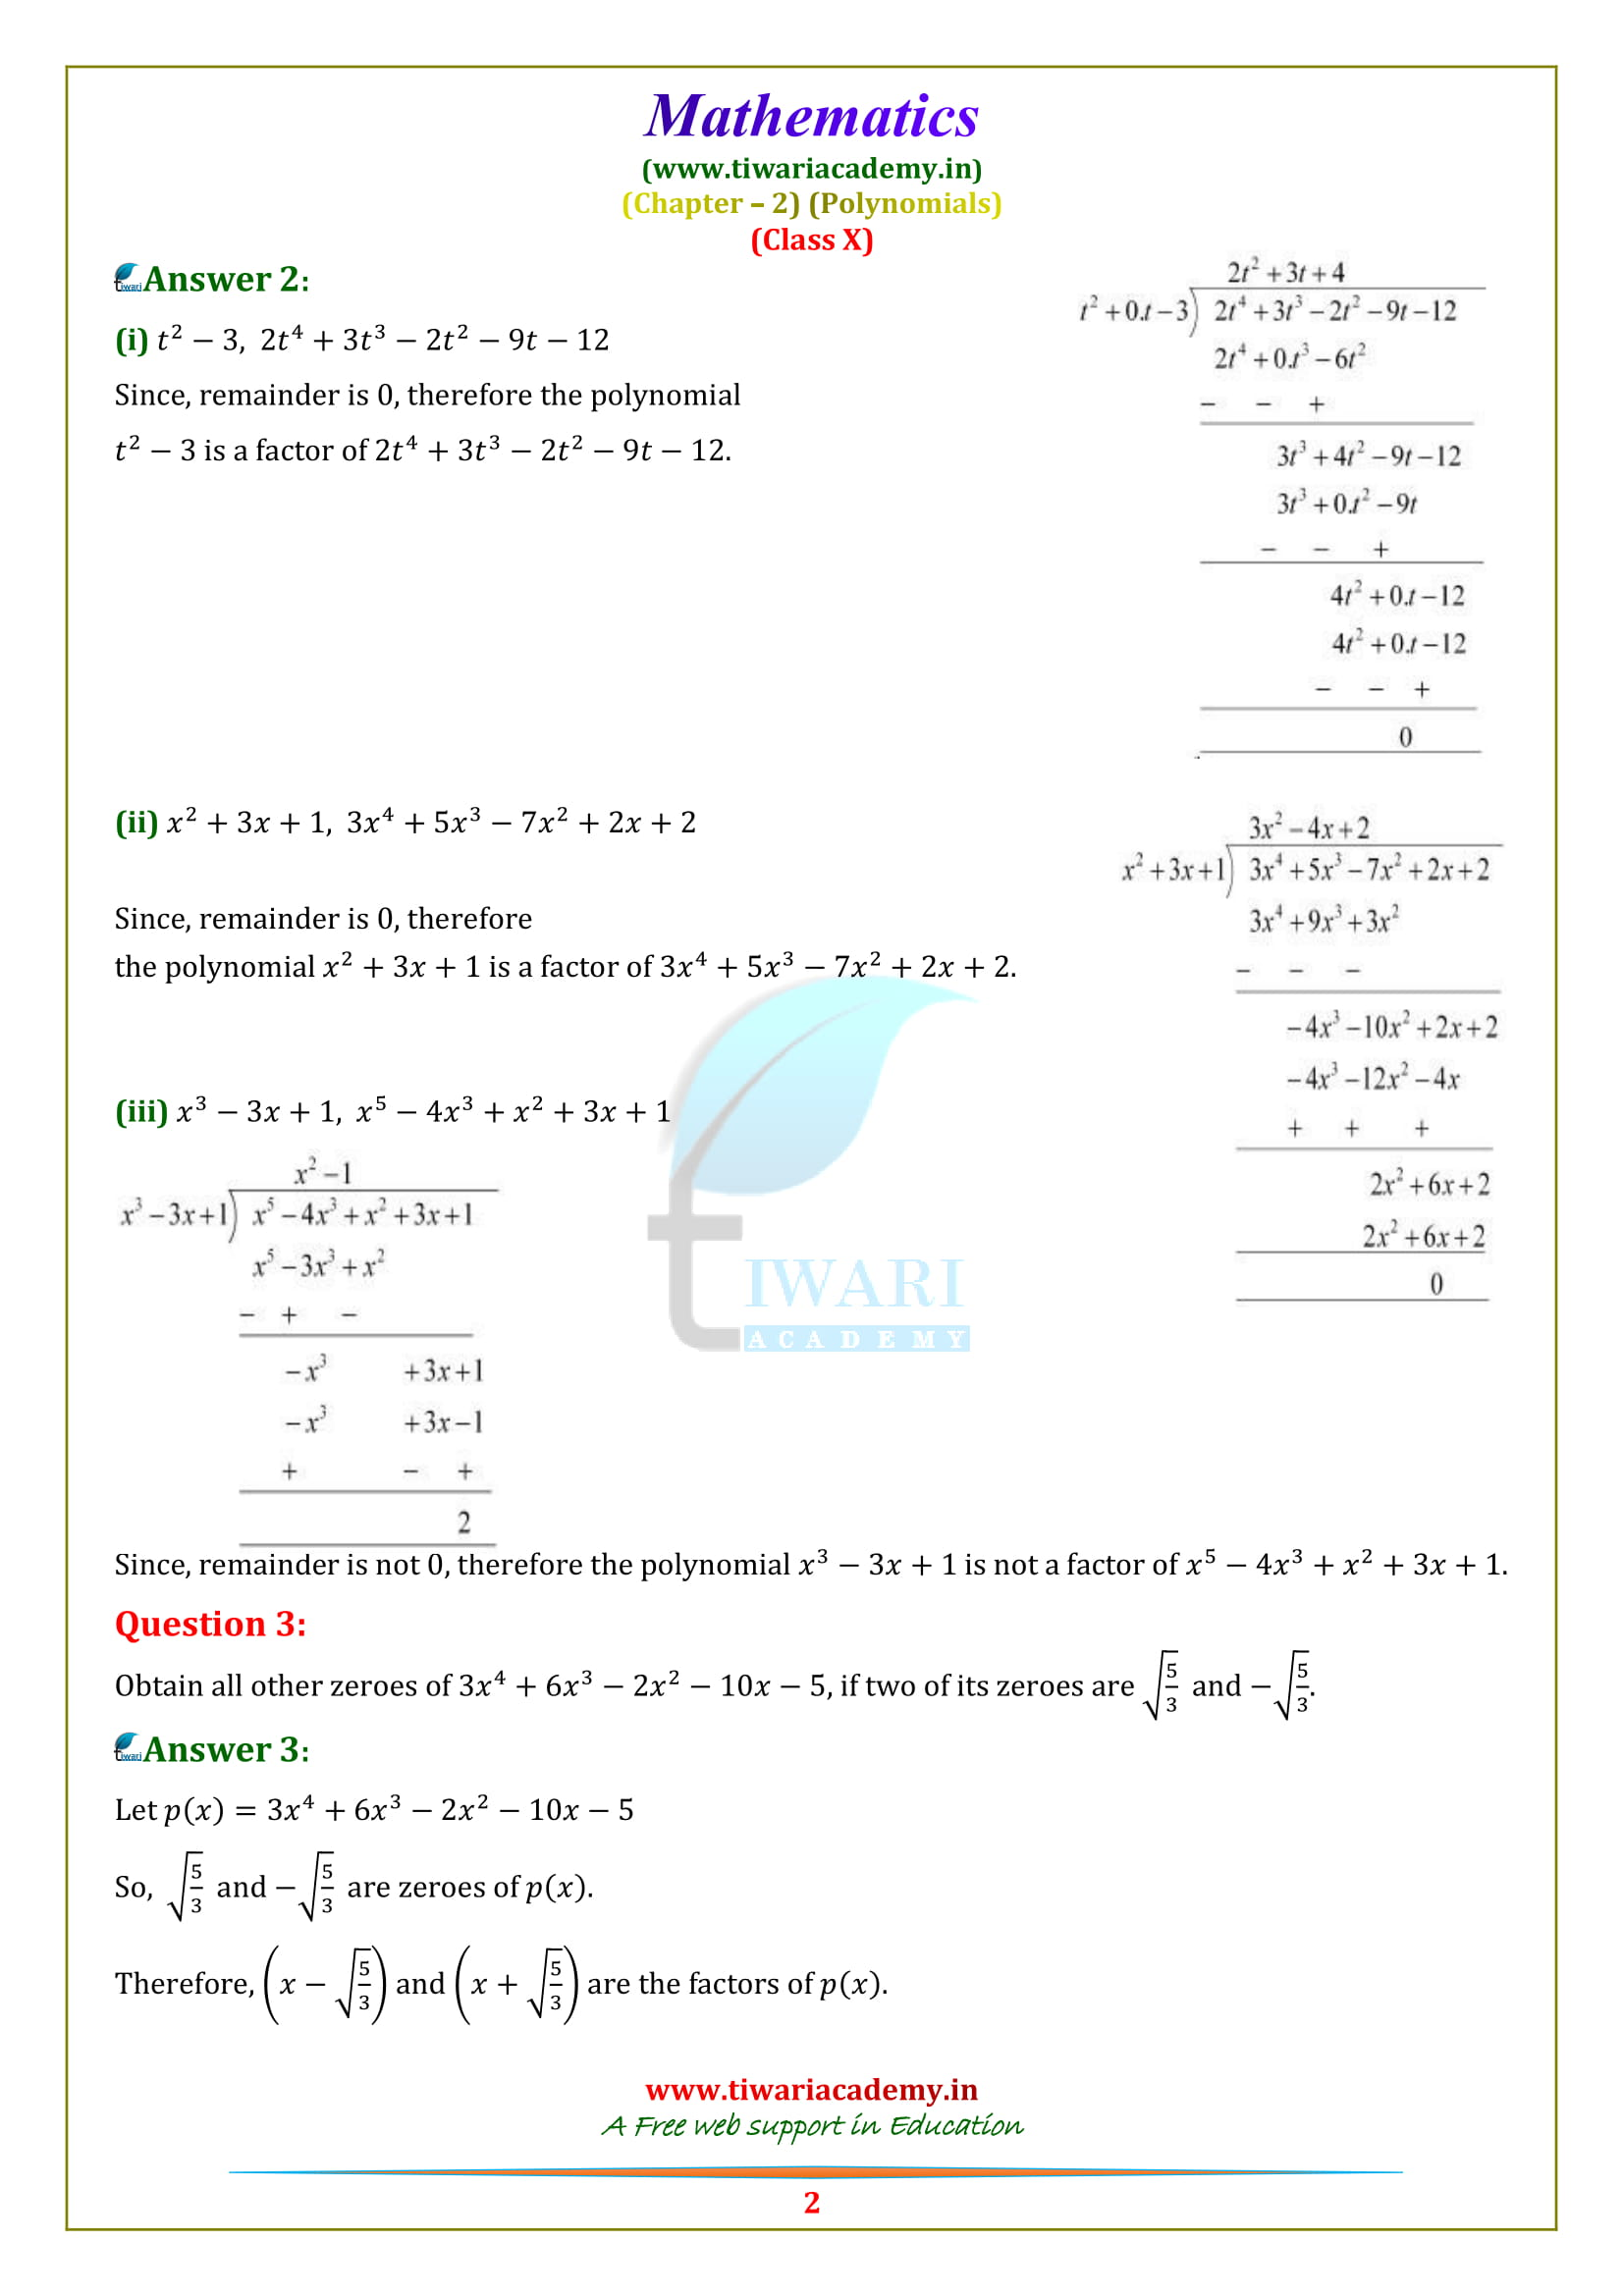 Class 10 Maths Chapter 2 Exercise 2.3 question 4, 5, 6, 7